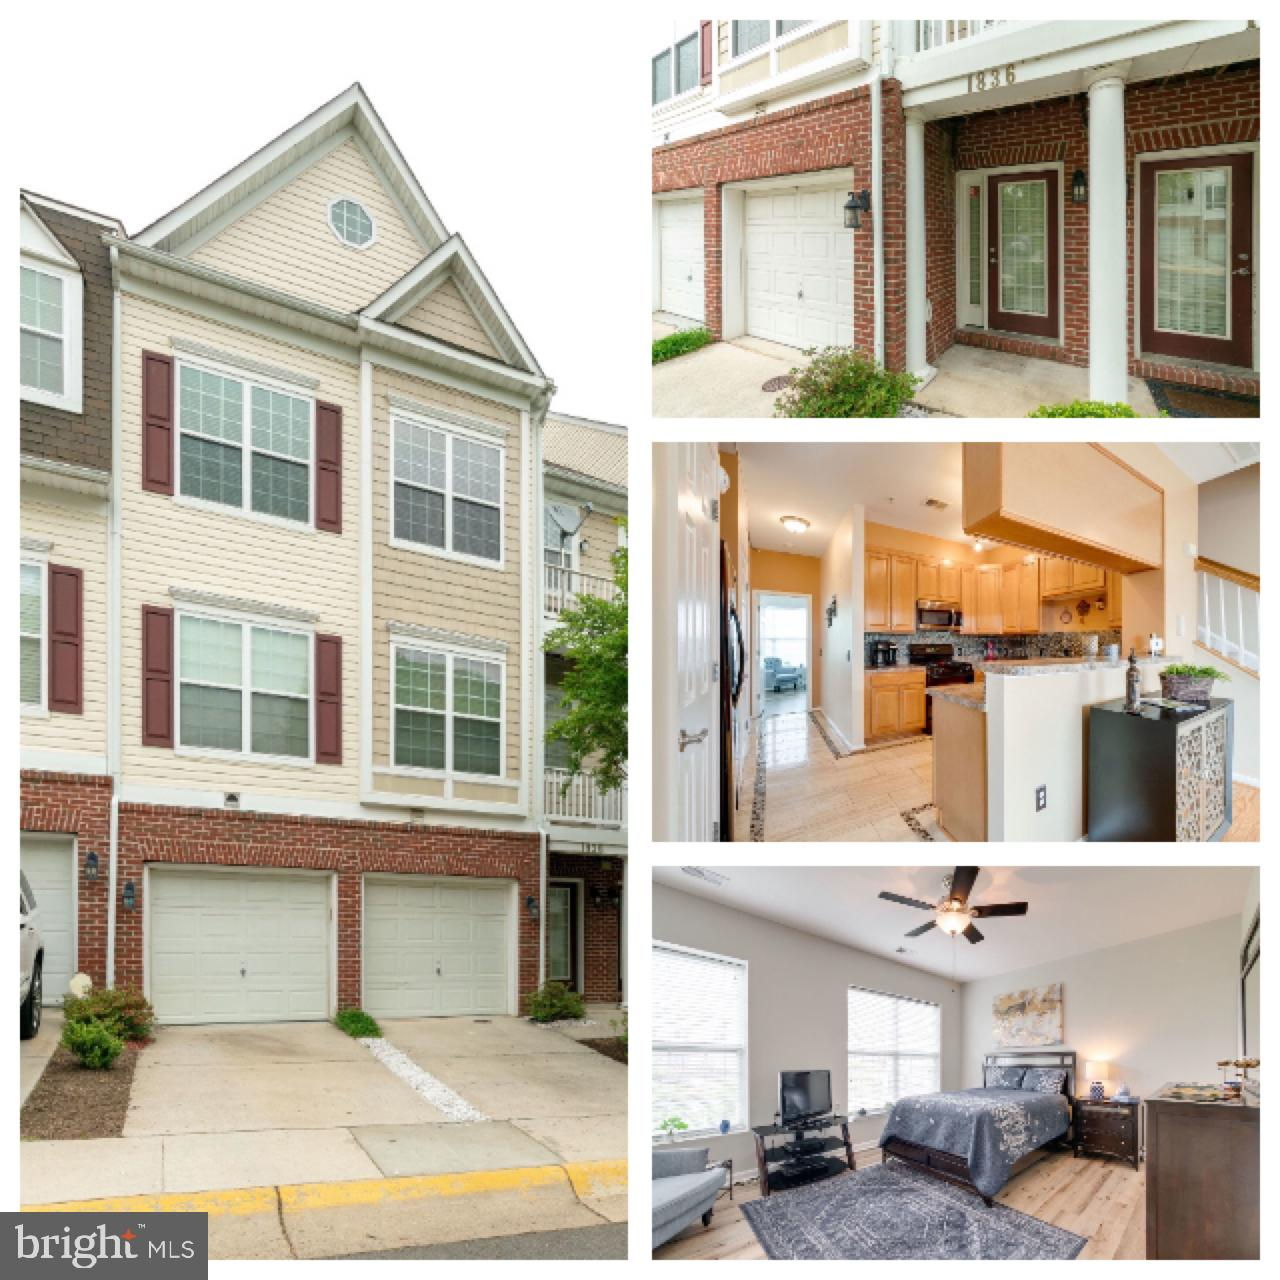 OPEN HOUSE FOR SATURDAY MAY 18TH AND SUNDAY MAY 19 HAVE BEEN CANCELLED!!! Spacious & Bright Two Level Condo / Upper Unit with 1 Car Garage. 3 Bedrooms, 2.5 Baths, Second Floor Flex Space and Media Room/Den.  Separate Laundry Room Very well maintained.  Spacious Master Bedroom with Two Walk-in Closets.  Large Master Bathroom with Separate Shower, Dual Vanity and Tub with Shower.  Small Deck off of the Master Bedroom. Living Room/Dining Room with Refinished Hardwood Floors.  Kitchen with Travertine Tile Flooring.  New installation of Luxury Vinyl Flooring in Master Bedroom and Upper Level. HVAC& Hot Water Heater Less than 2 years old.  Garage Floor and Large Deck have been refinished.  Great Location just off of I-95 at Prince William Parkway. 2 Miles to the VRE Station, Easy access to Commuter Lots and all of the Nearby Shopping.